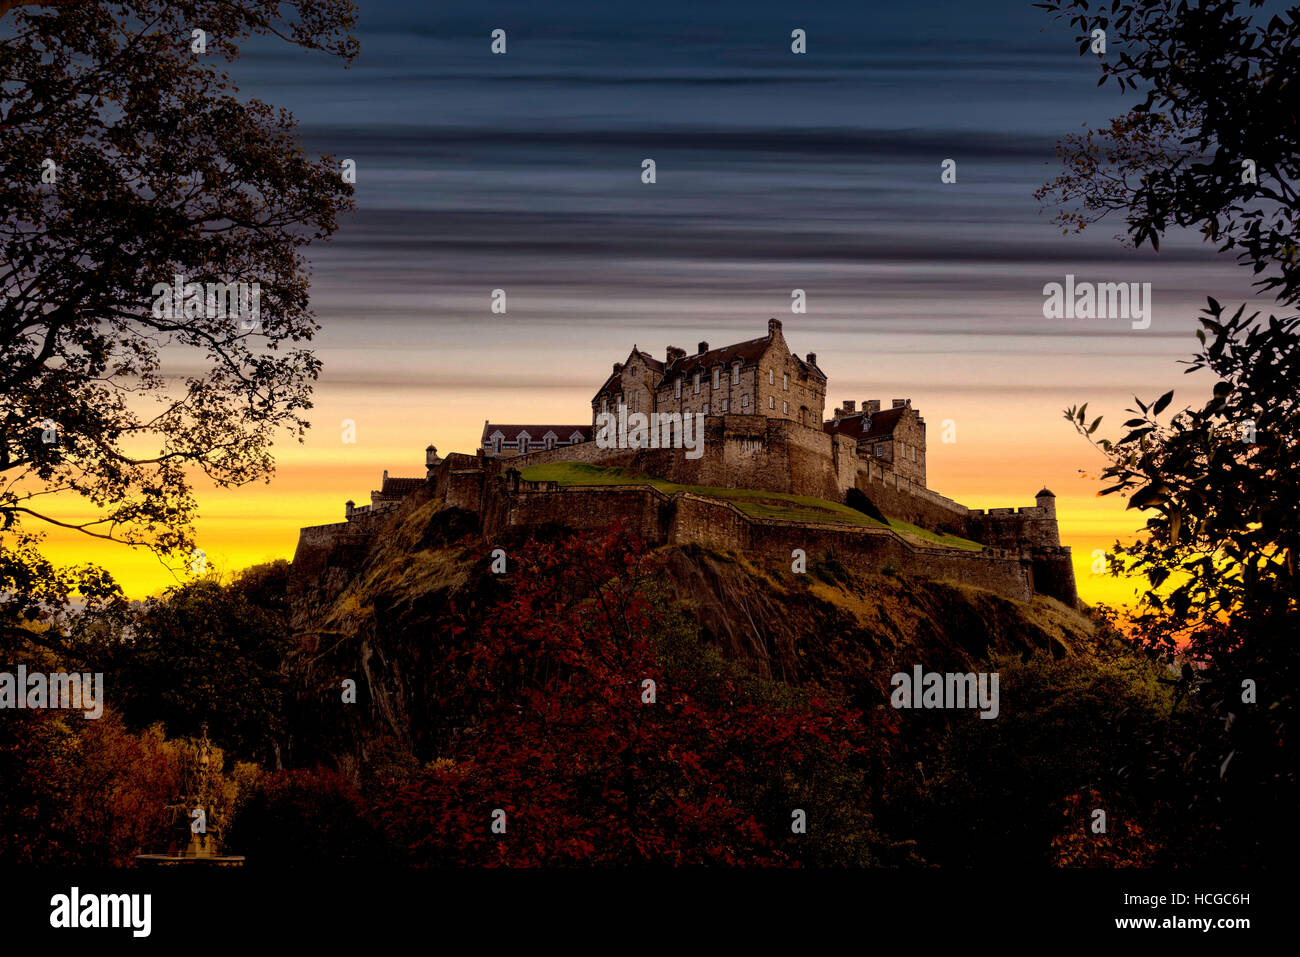 Edinburgh Skyline - Stock Image